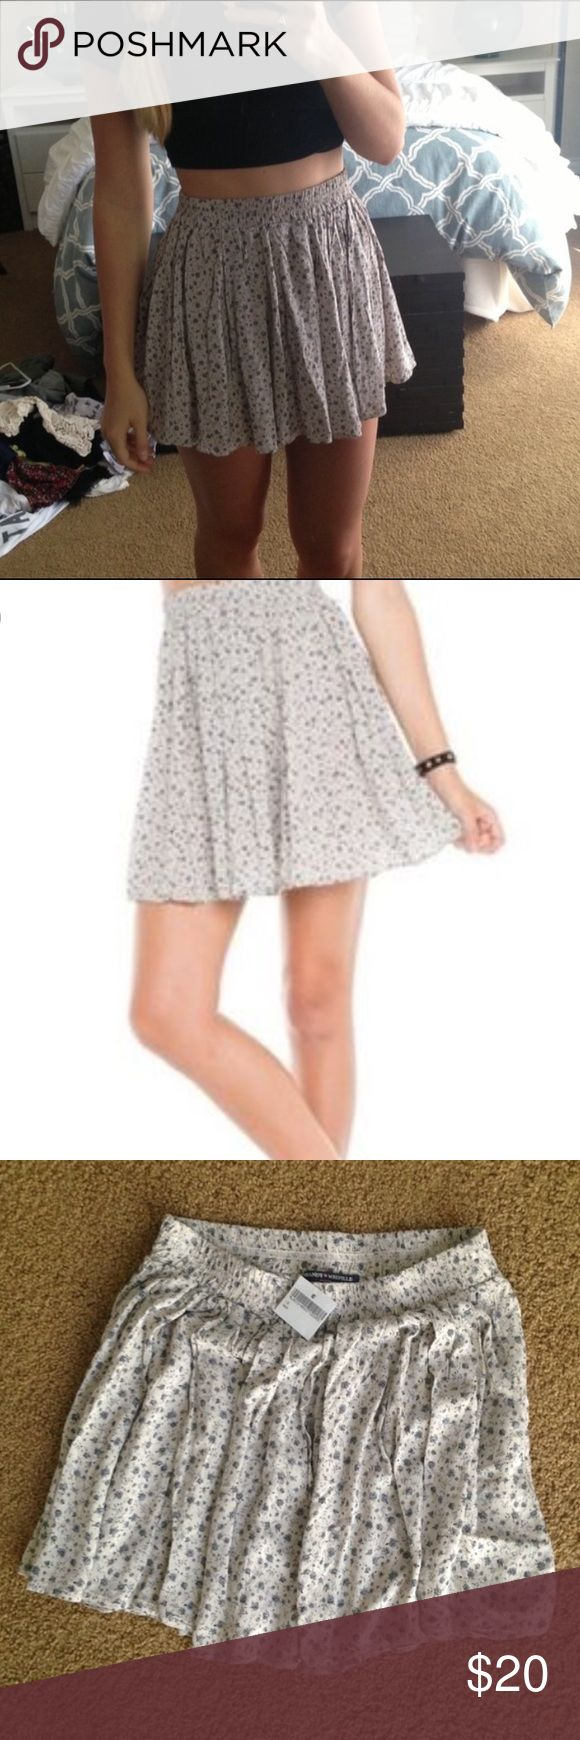 Brandy Melville Floral Skirt This skirt is not in stores/online anymore! Will leave for college on the 17th so make offers now! Willing to negotiate. Brandy Melville Skirts Circle & Skater